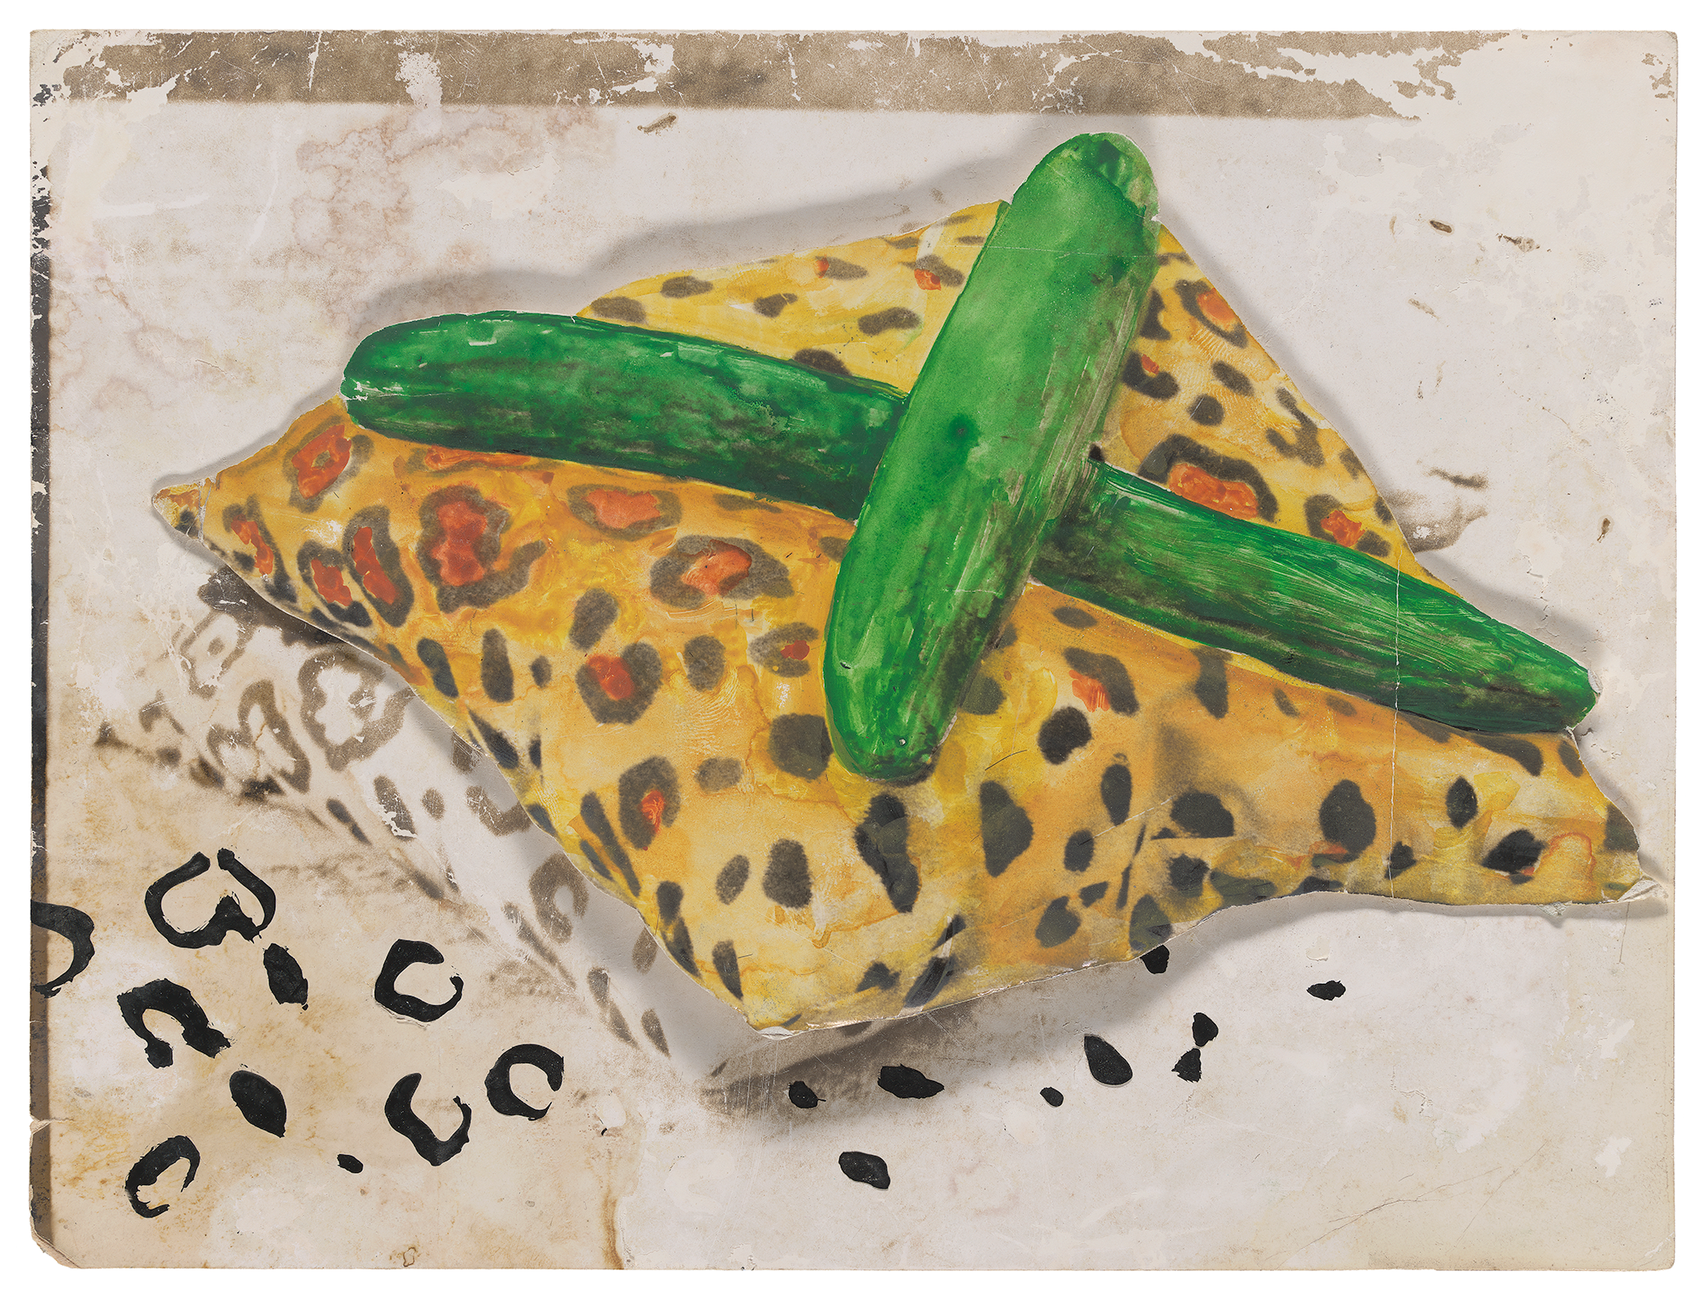 yellow leopard patterned pillow with two cucumbers crossed on top